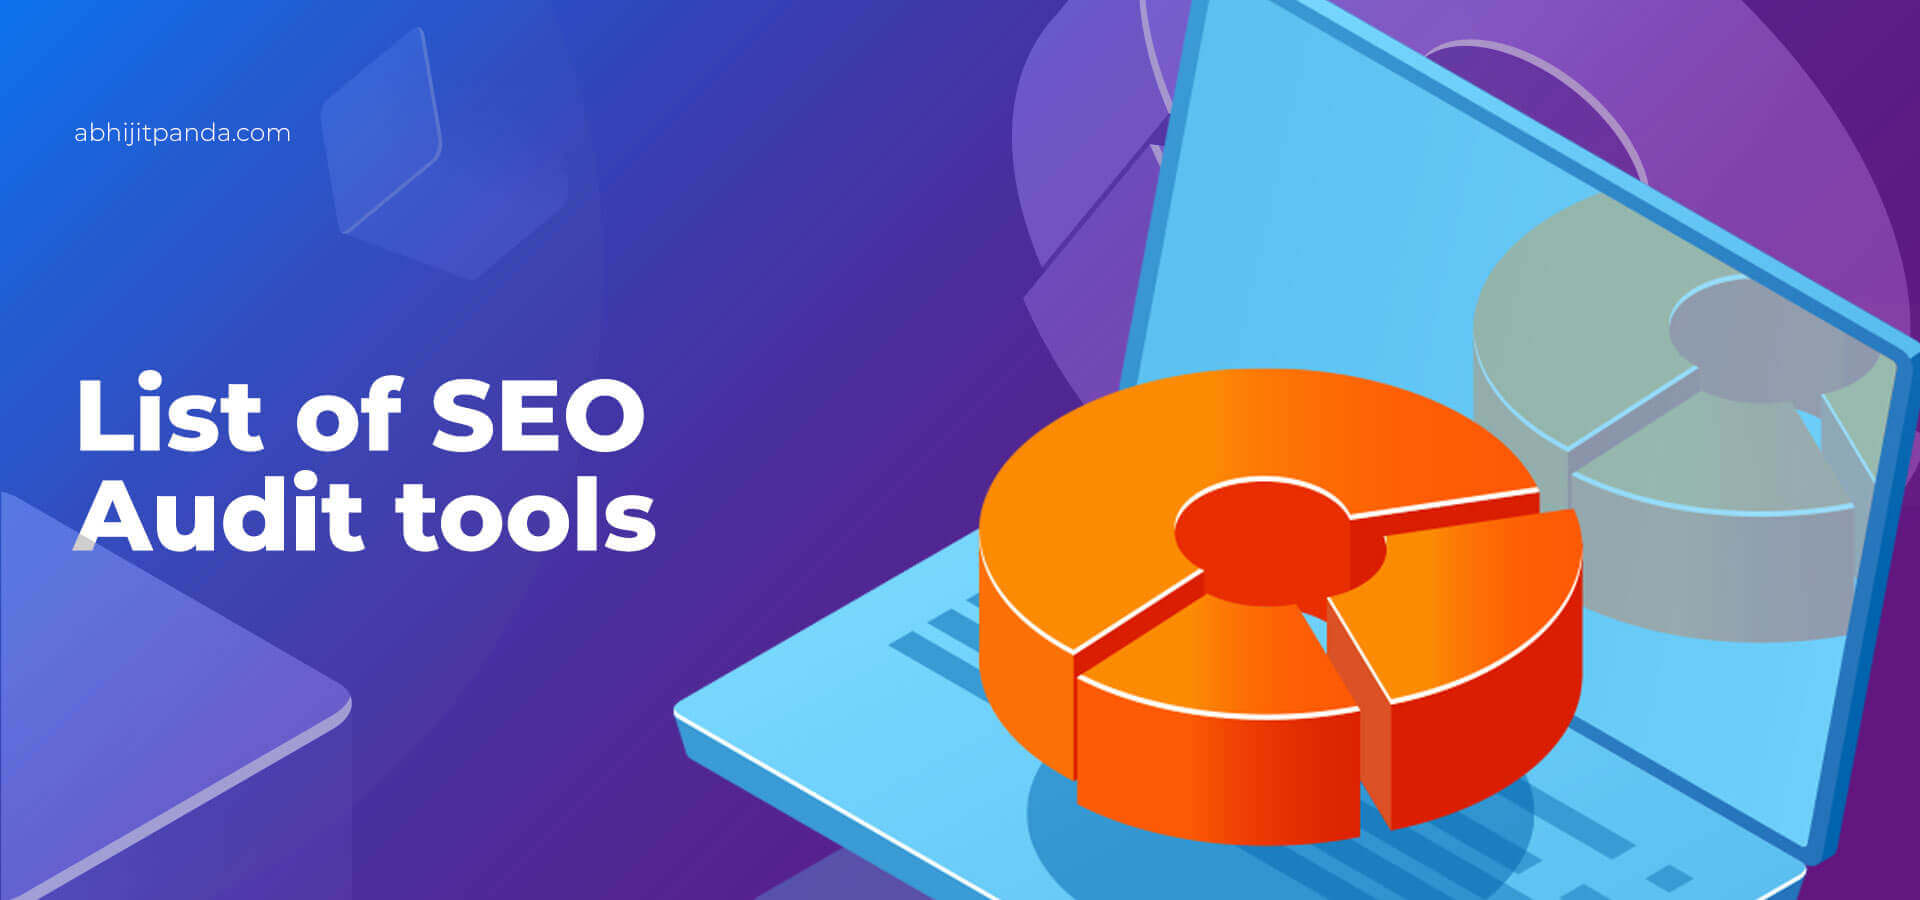 List of SEO Audit Tools